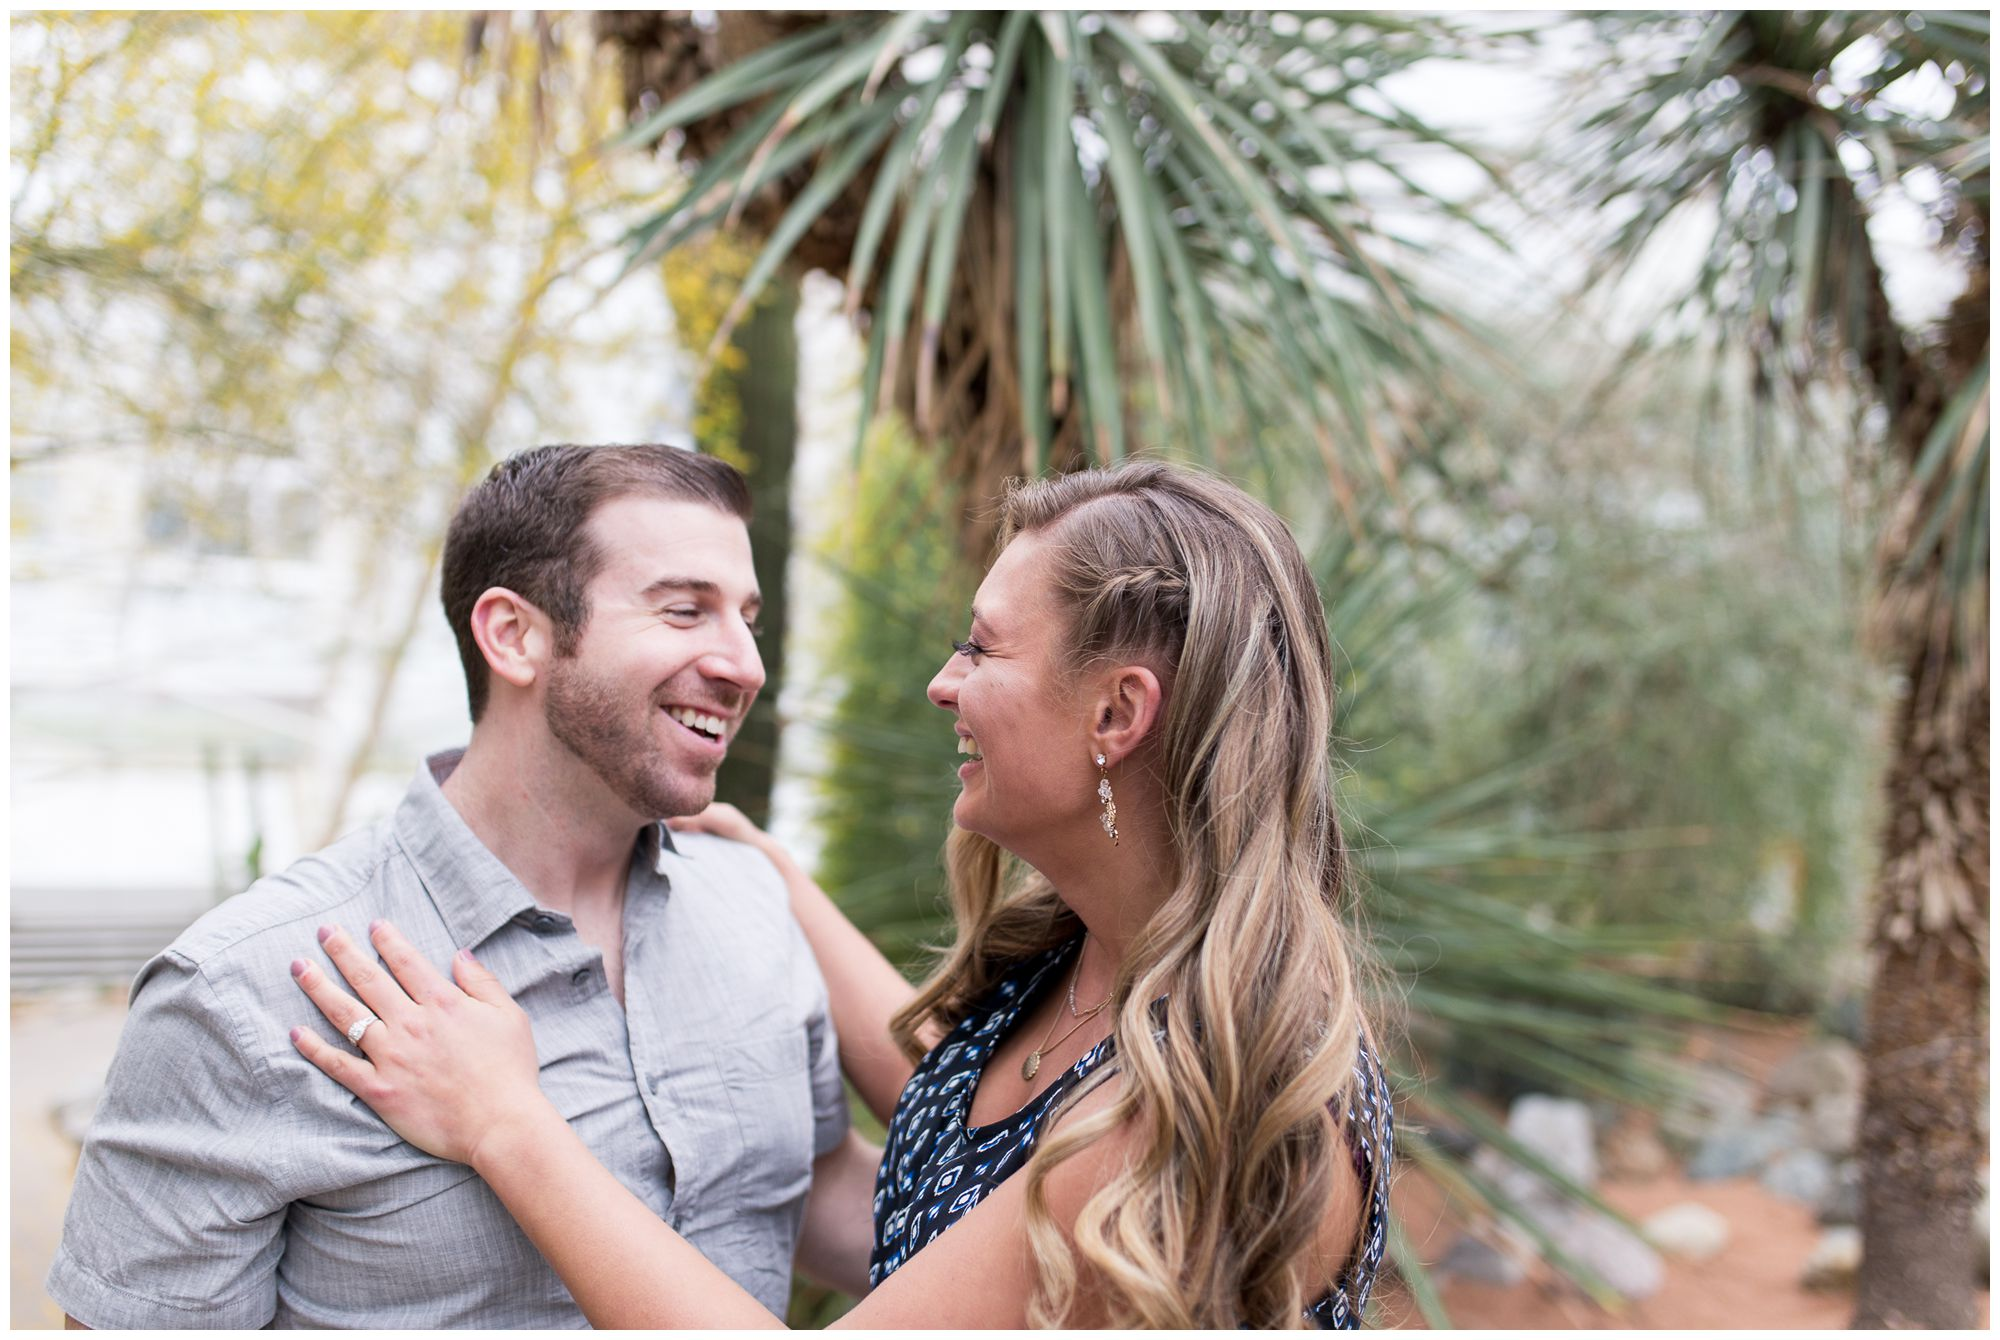 Fort Wayne engagement and wedding photographer at Foellinger-Freimann Botanical Conservatory